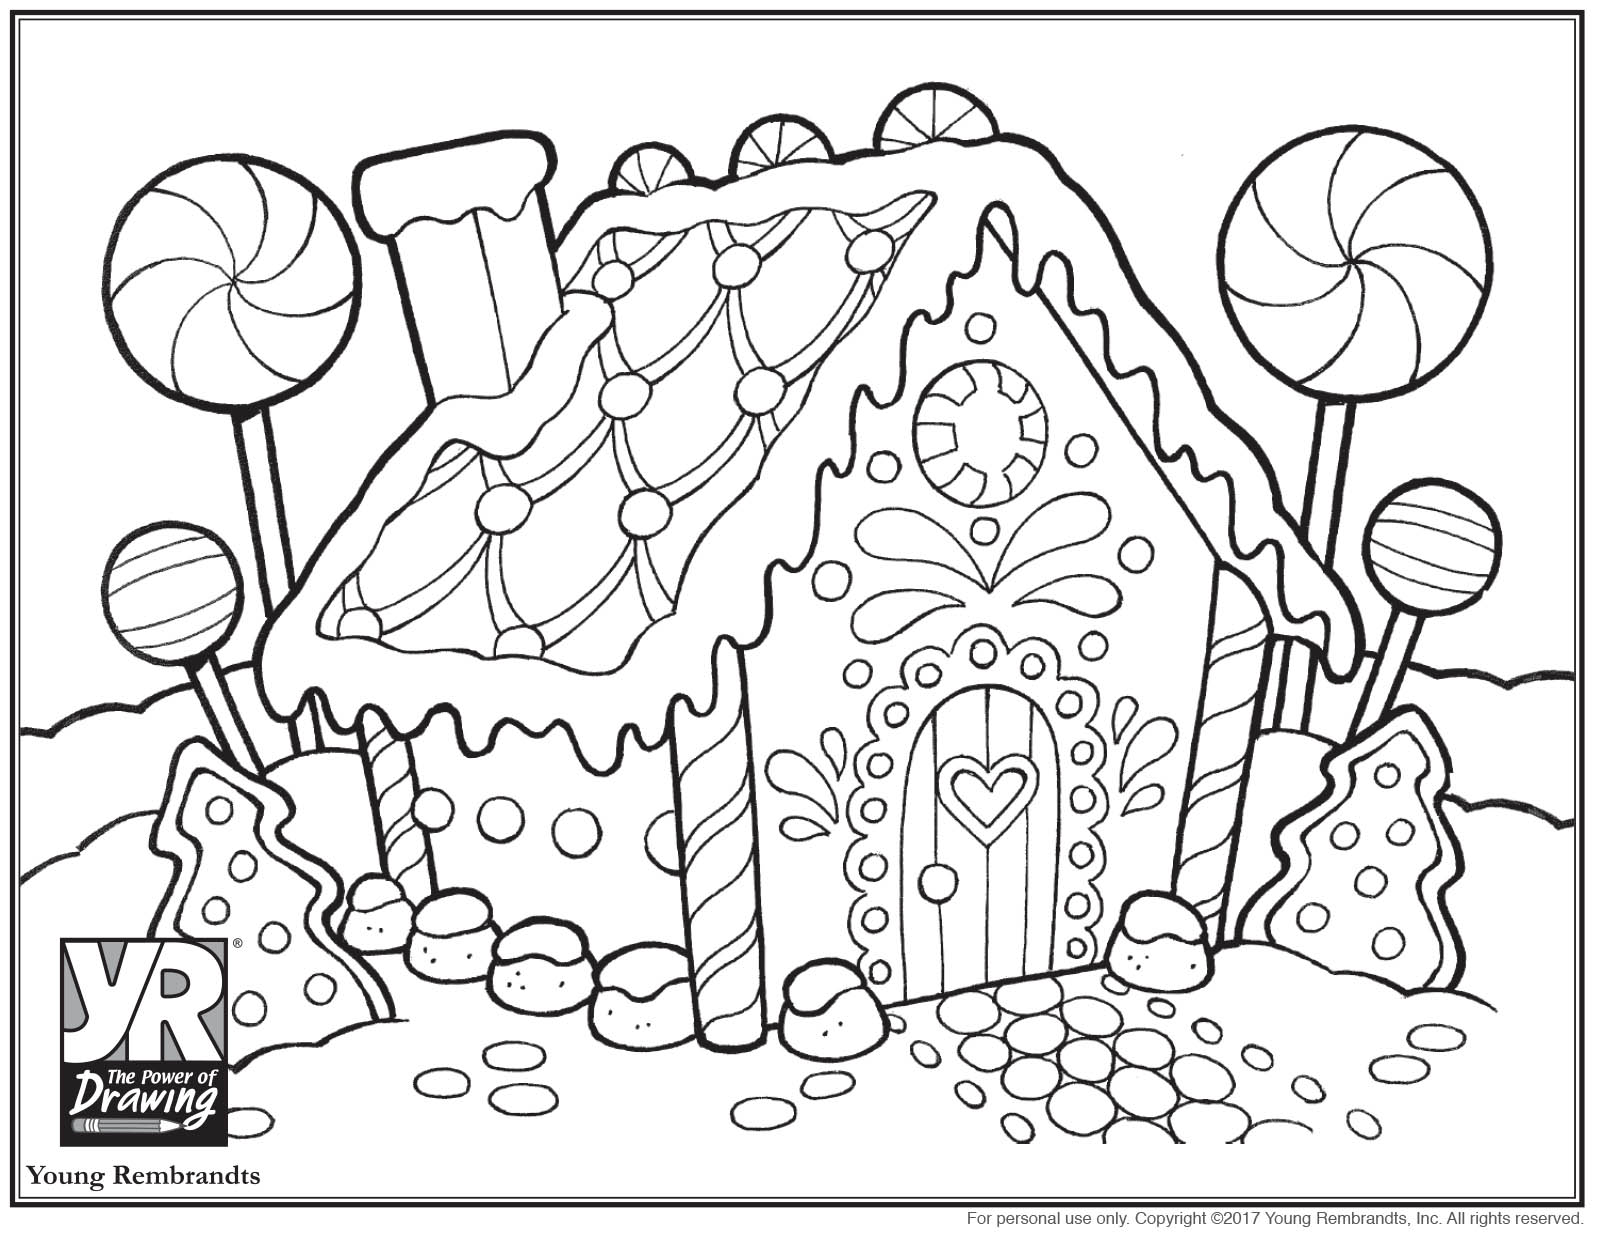 Gingerbread House Coloring Page - Young Rembrandts Shop